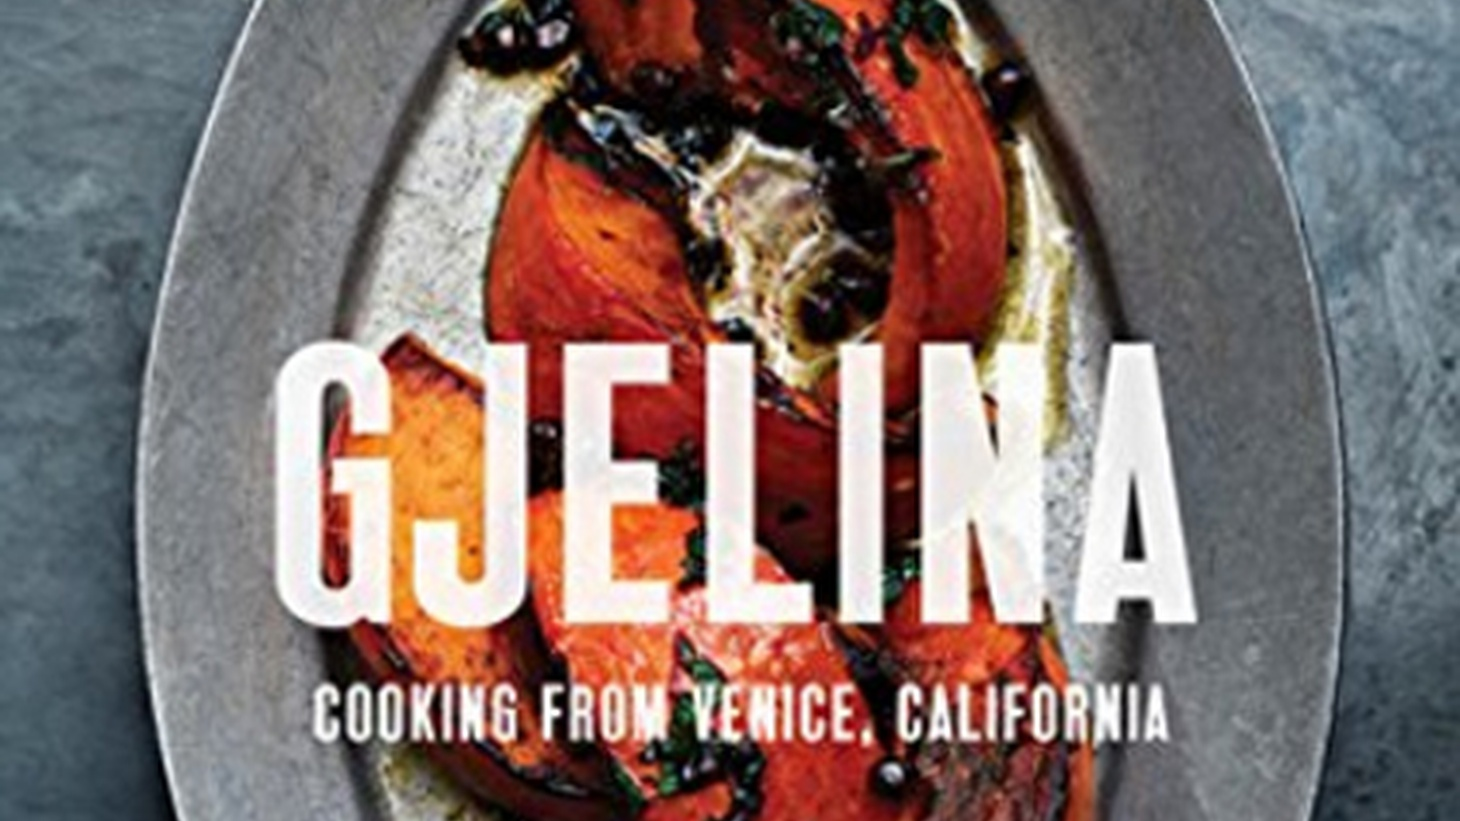 Jonathan Gold visits a high-end porridge restaurant in the San Gabriel Valley. Journalist Tom Philpott examines how a widely-used insecticide is hurting bees. AndGood Foodtaco correspondent Bill Esparza showcases a food truck serving regional Oaxacan food west of the 405.